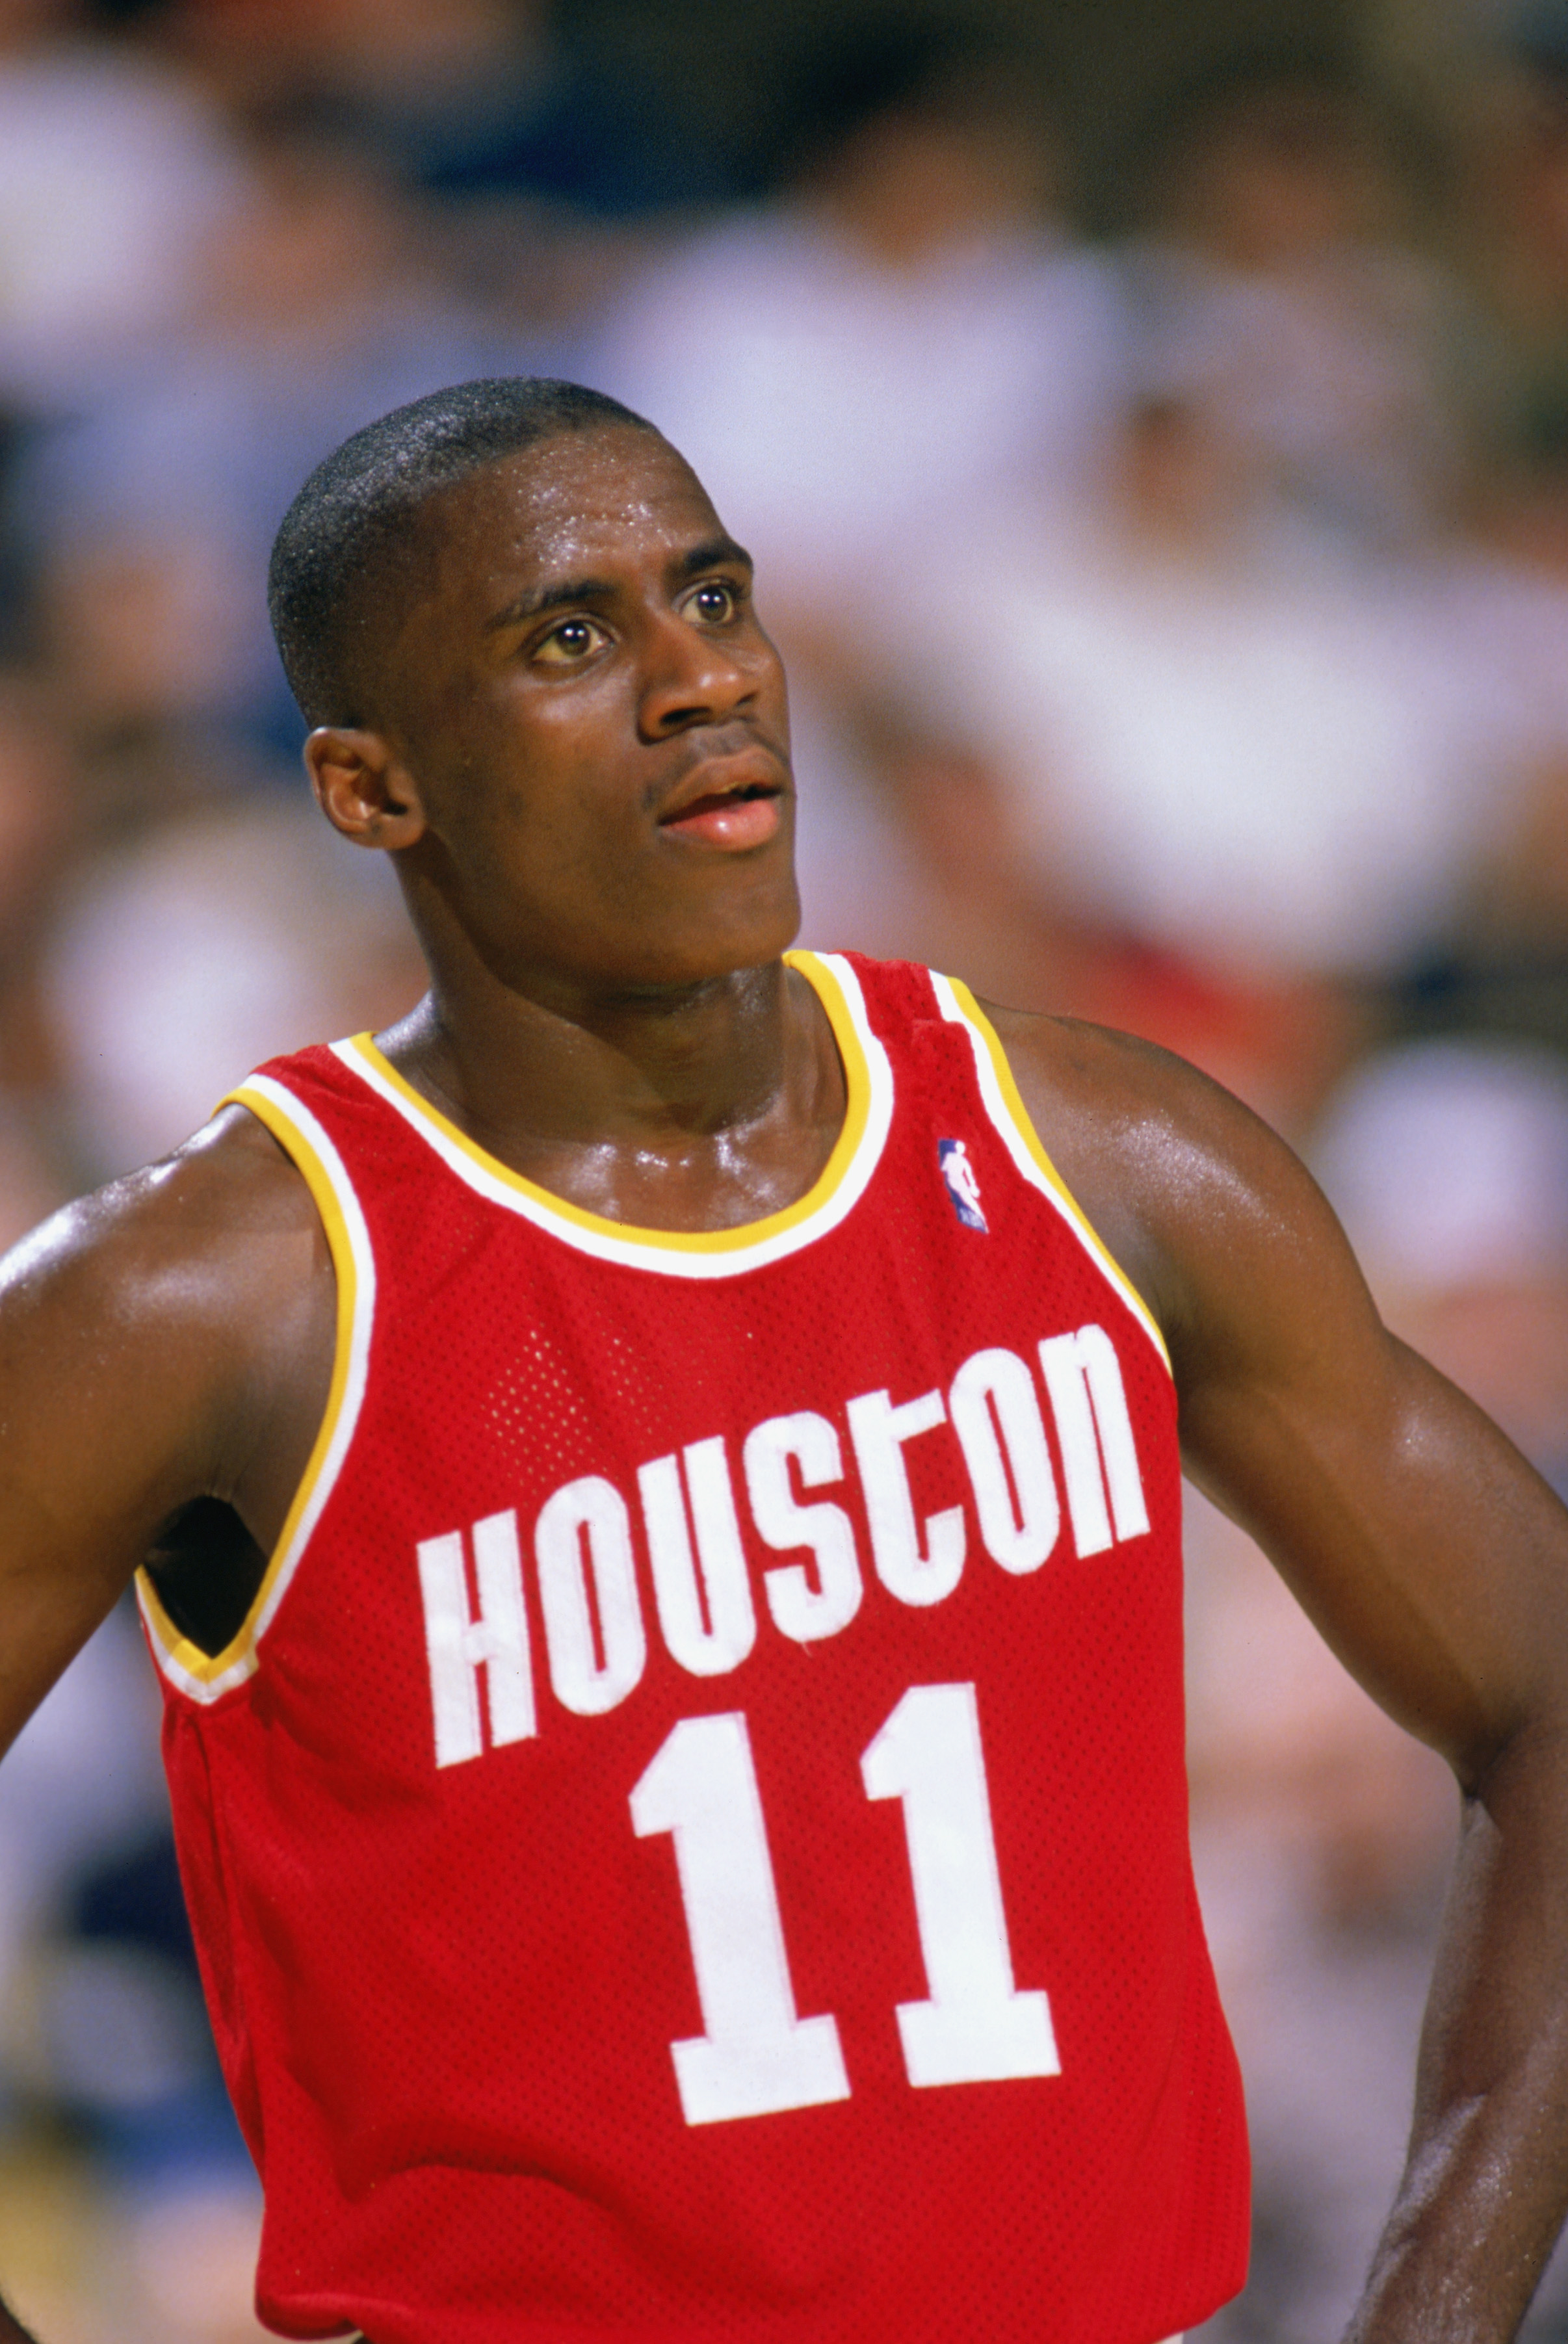 1989:  Vernon Maxwell #11 of the Houston Rockets looks on during a game in the1989-90 season.  NOTE TO USER: User expressly acknowledges and agrees that, by downloading and/or using this Photograph, User is consenting to the terms and conditions of the Ge